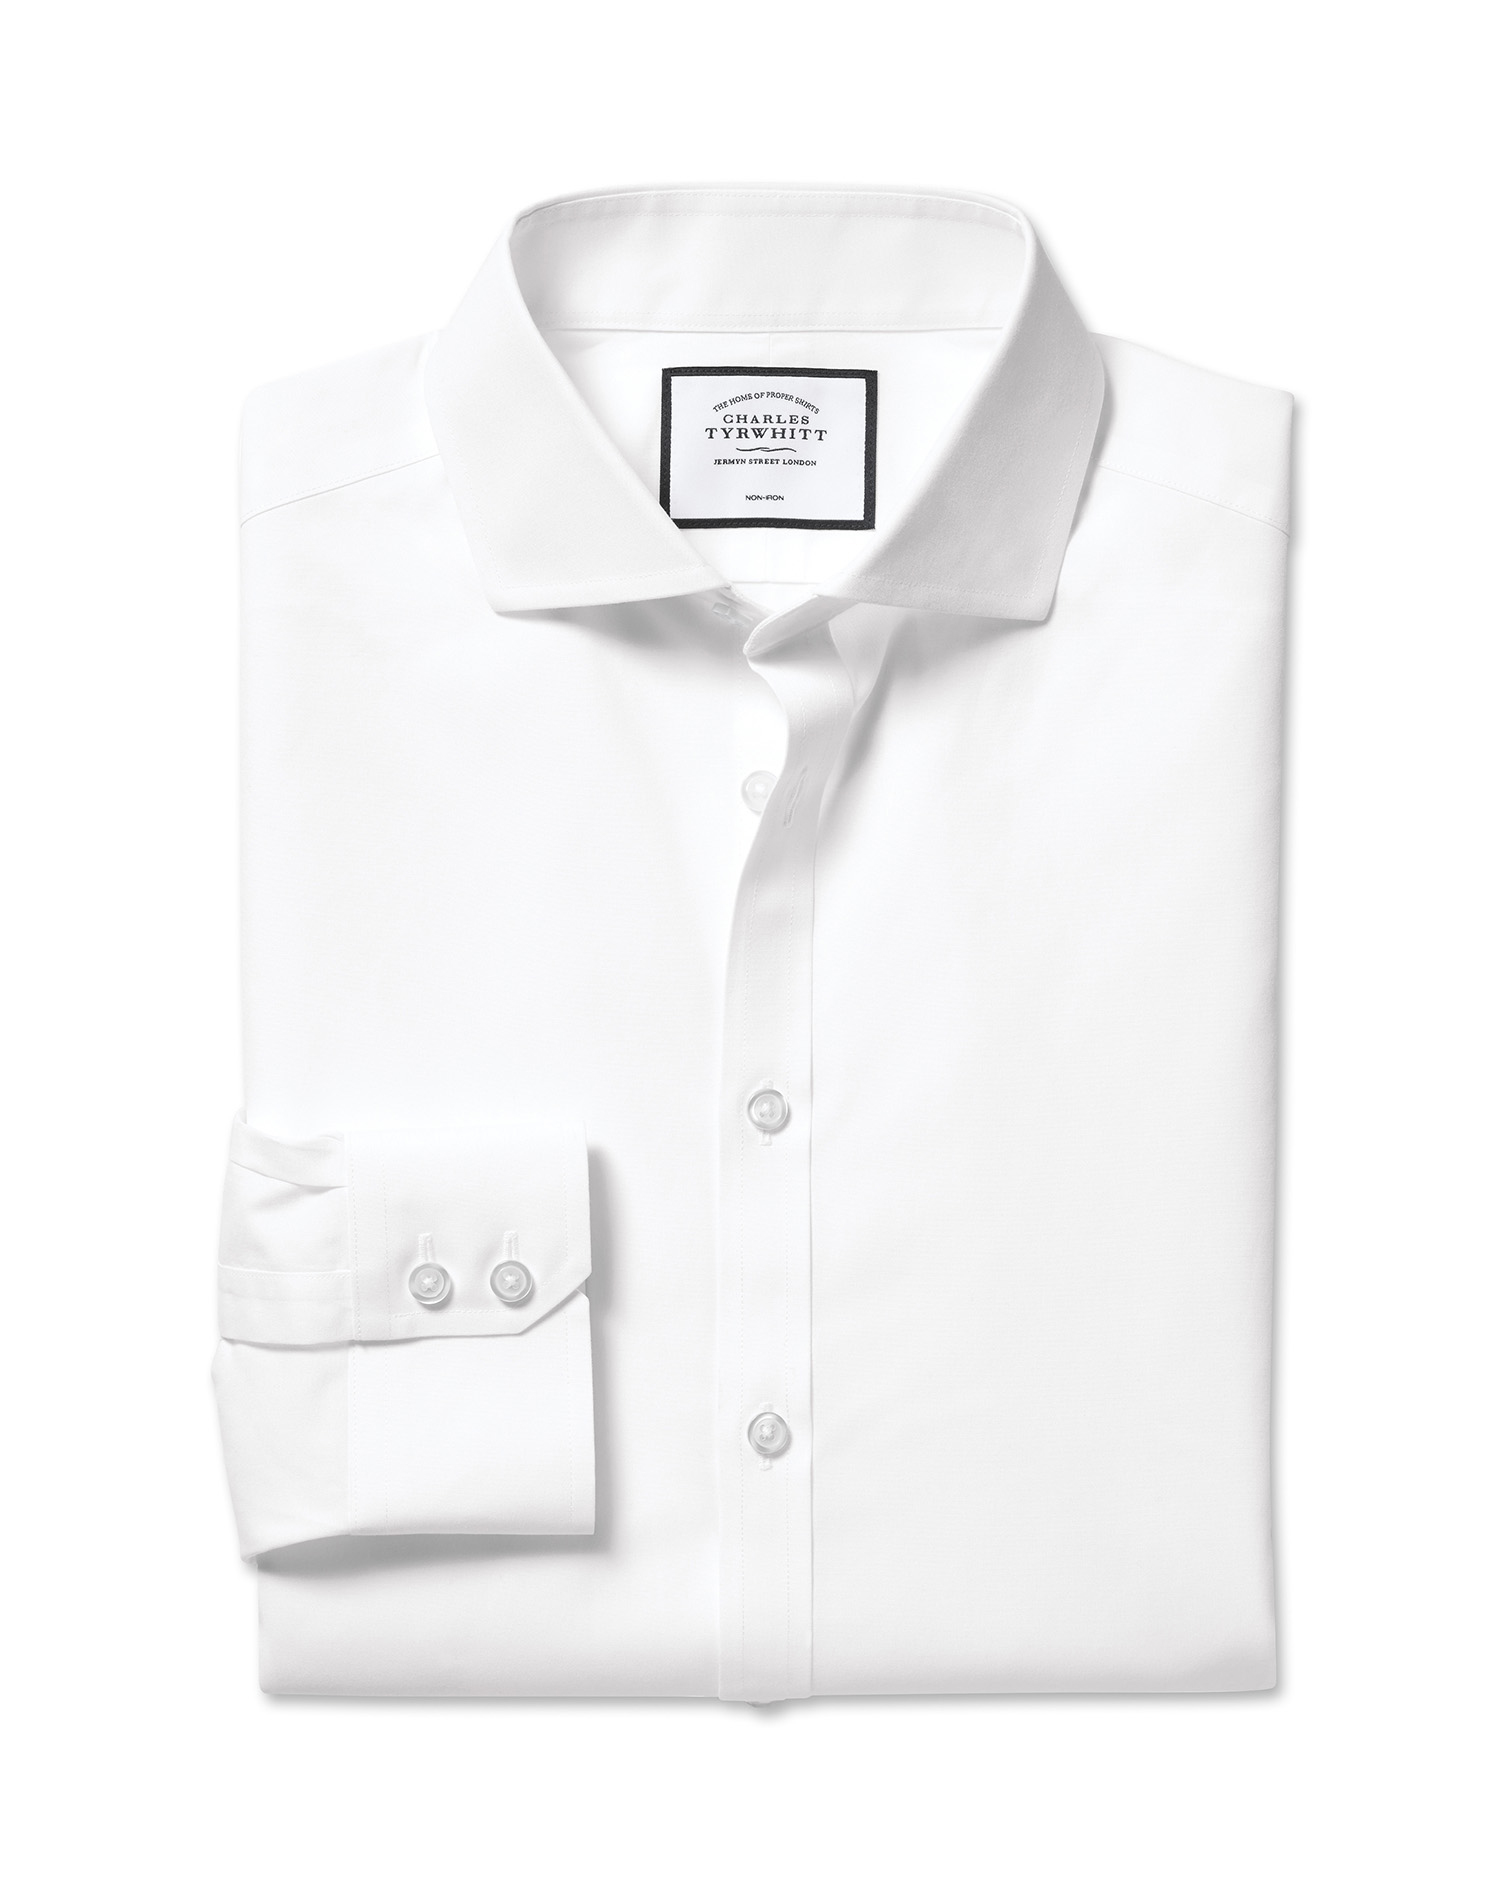 Extra Slim Fit Non-Iron Cutaway White Tyrwhitt Cool Cotton Formal Shirt Single Cuff Size 16/38 by Ch